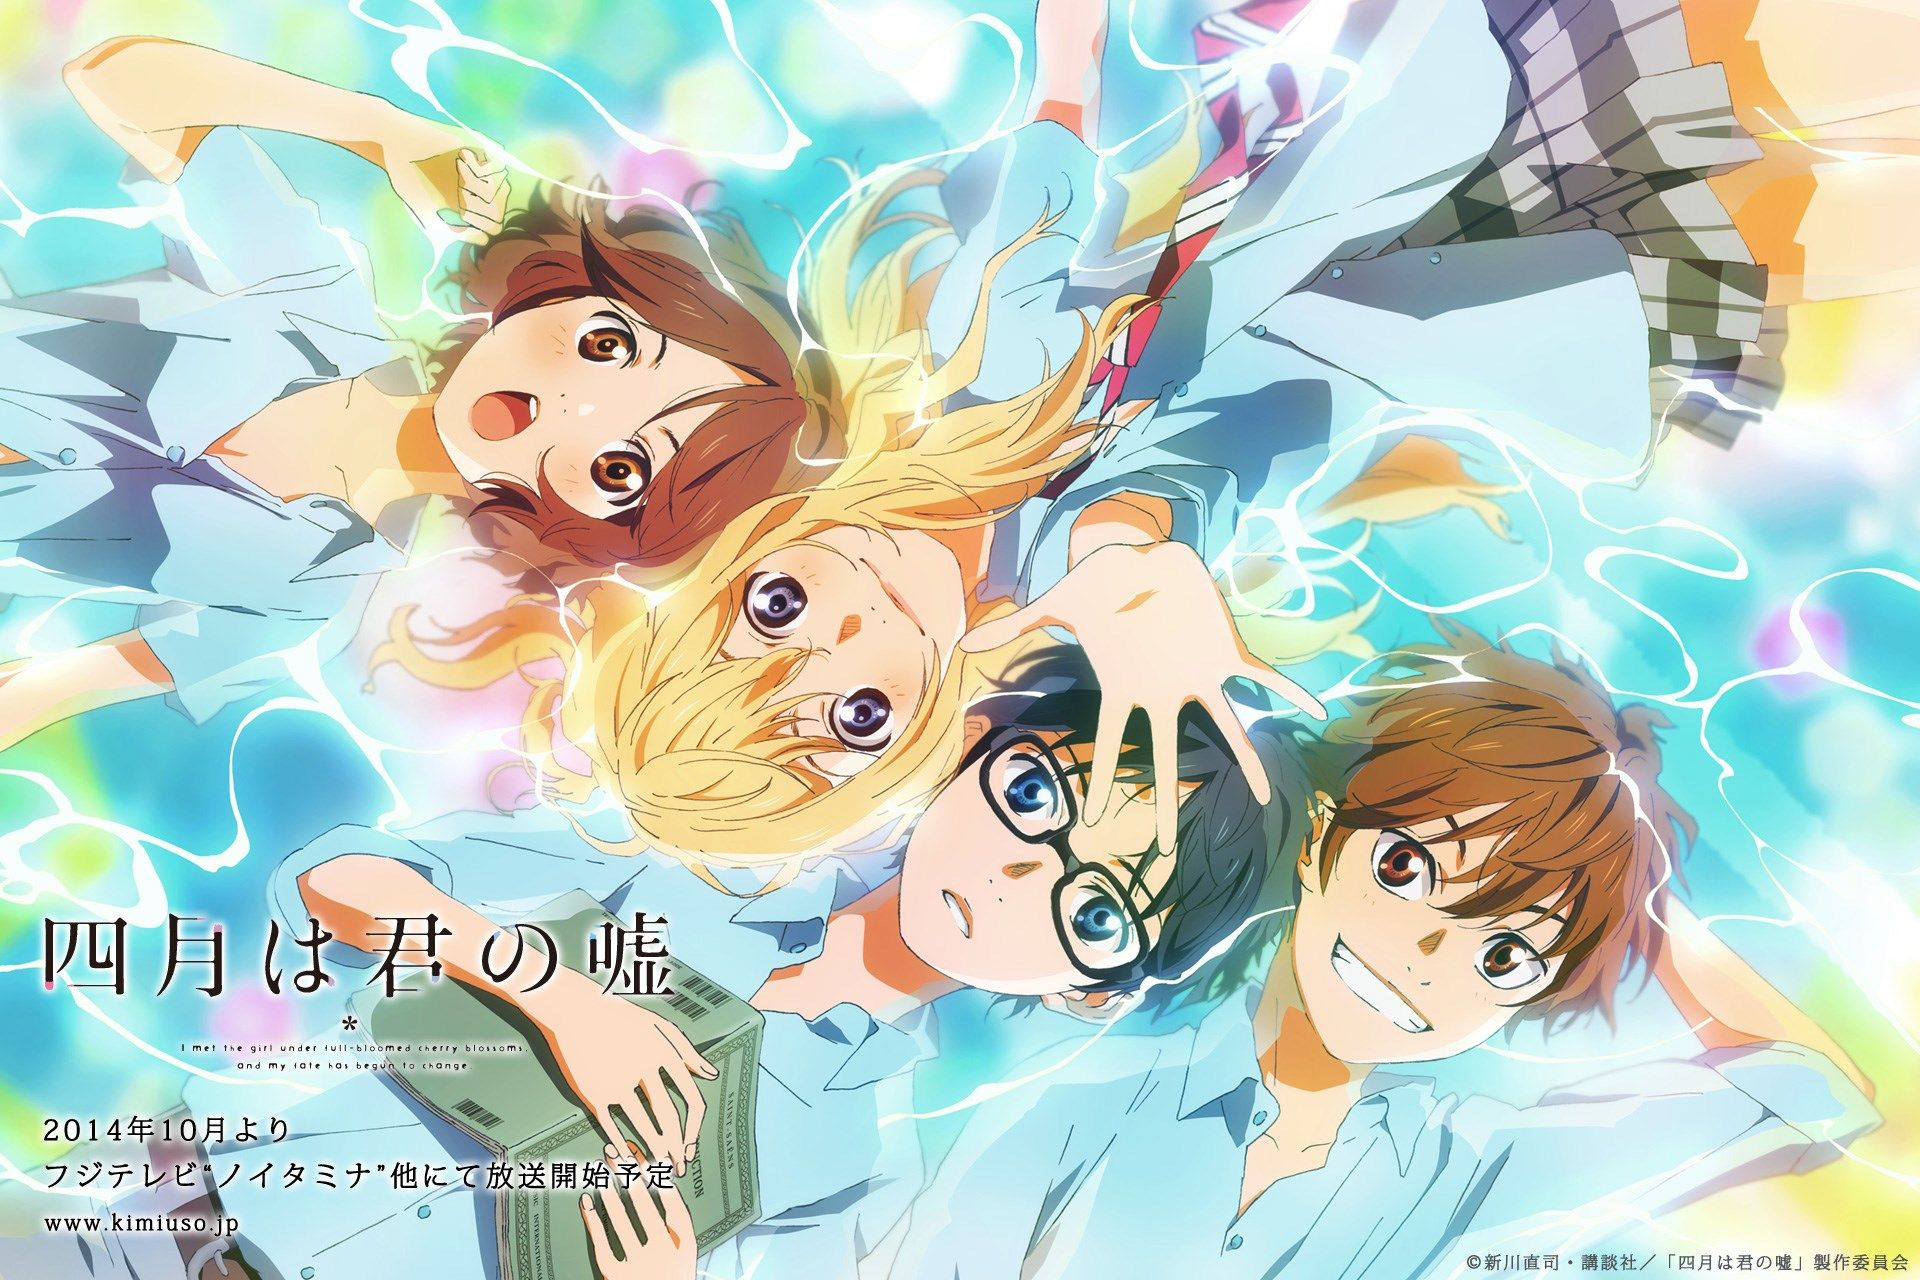 20170311 free wallpaper and screensavers for your lie